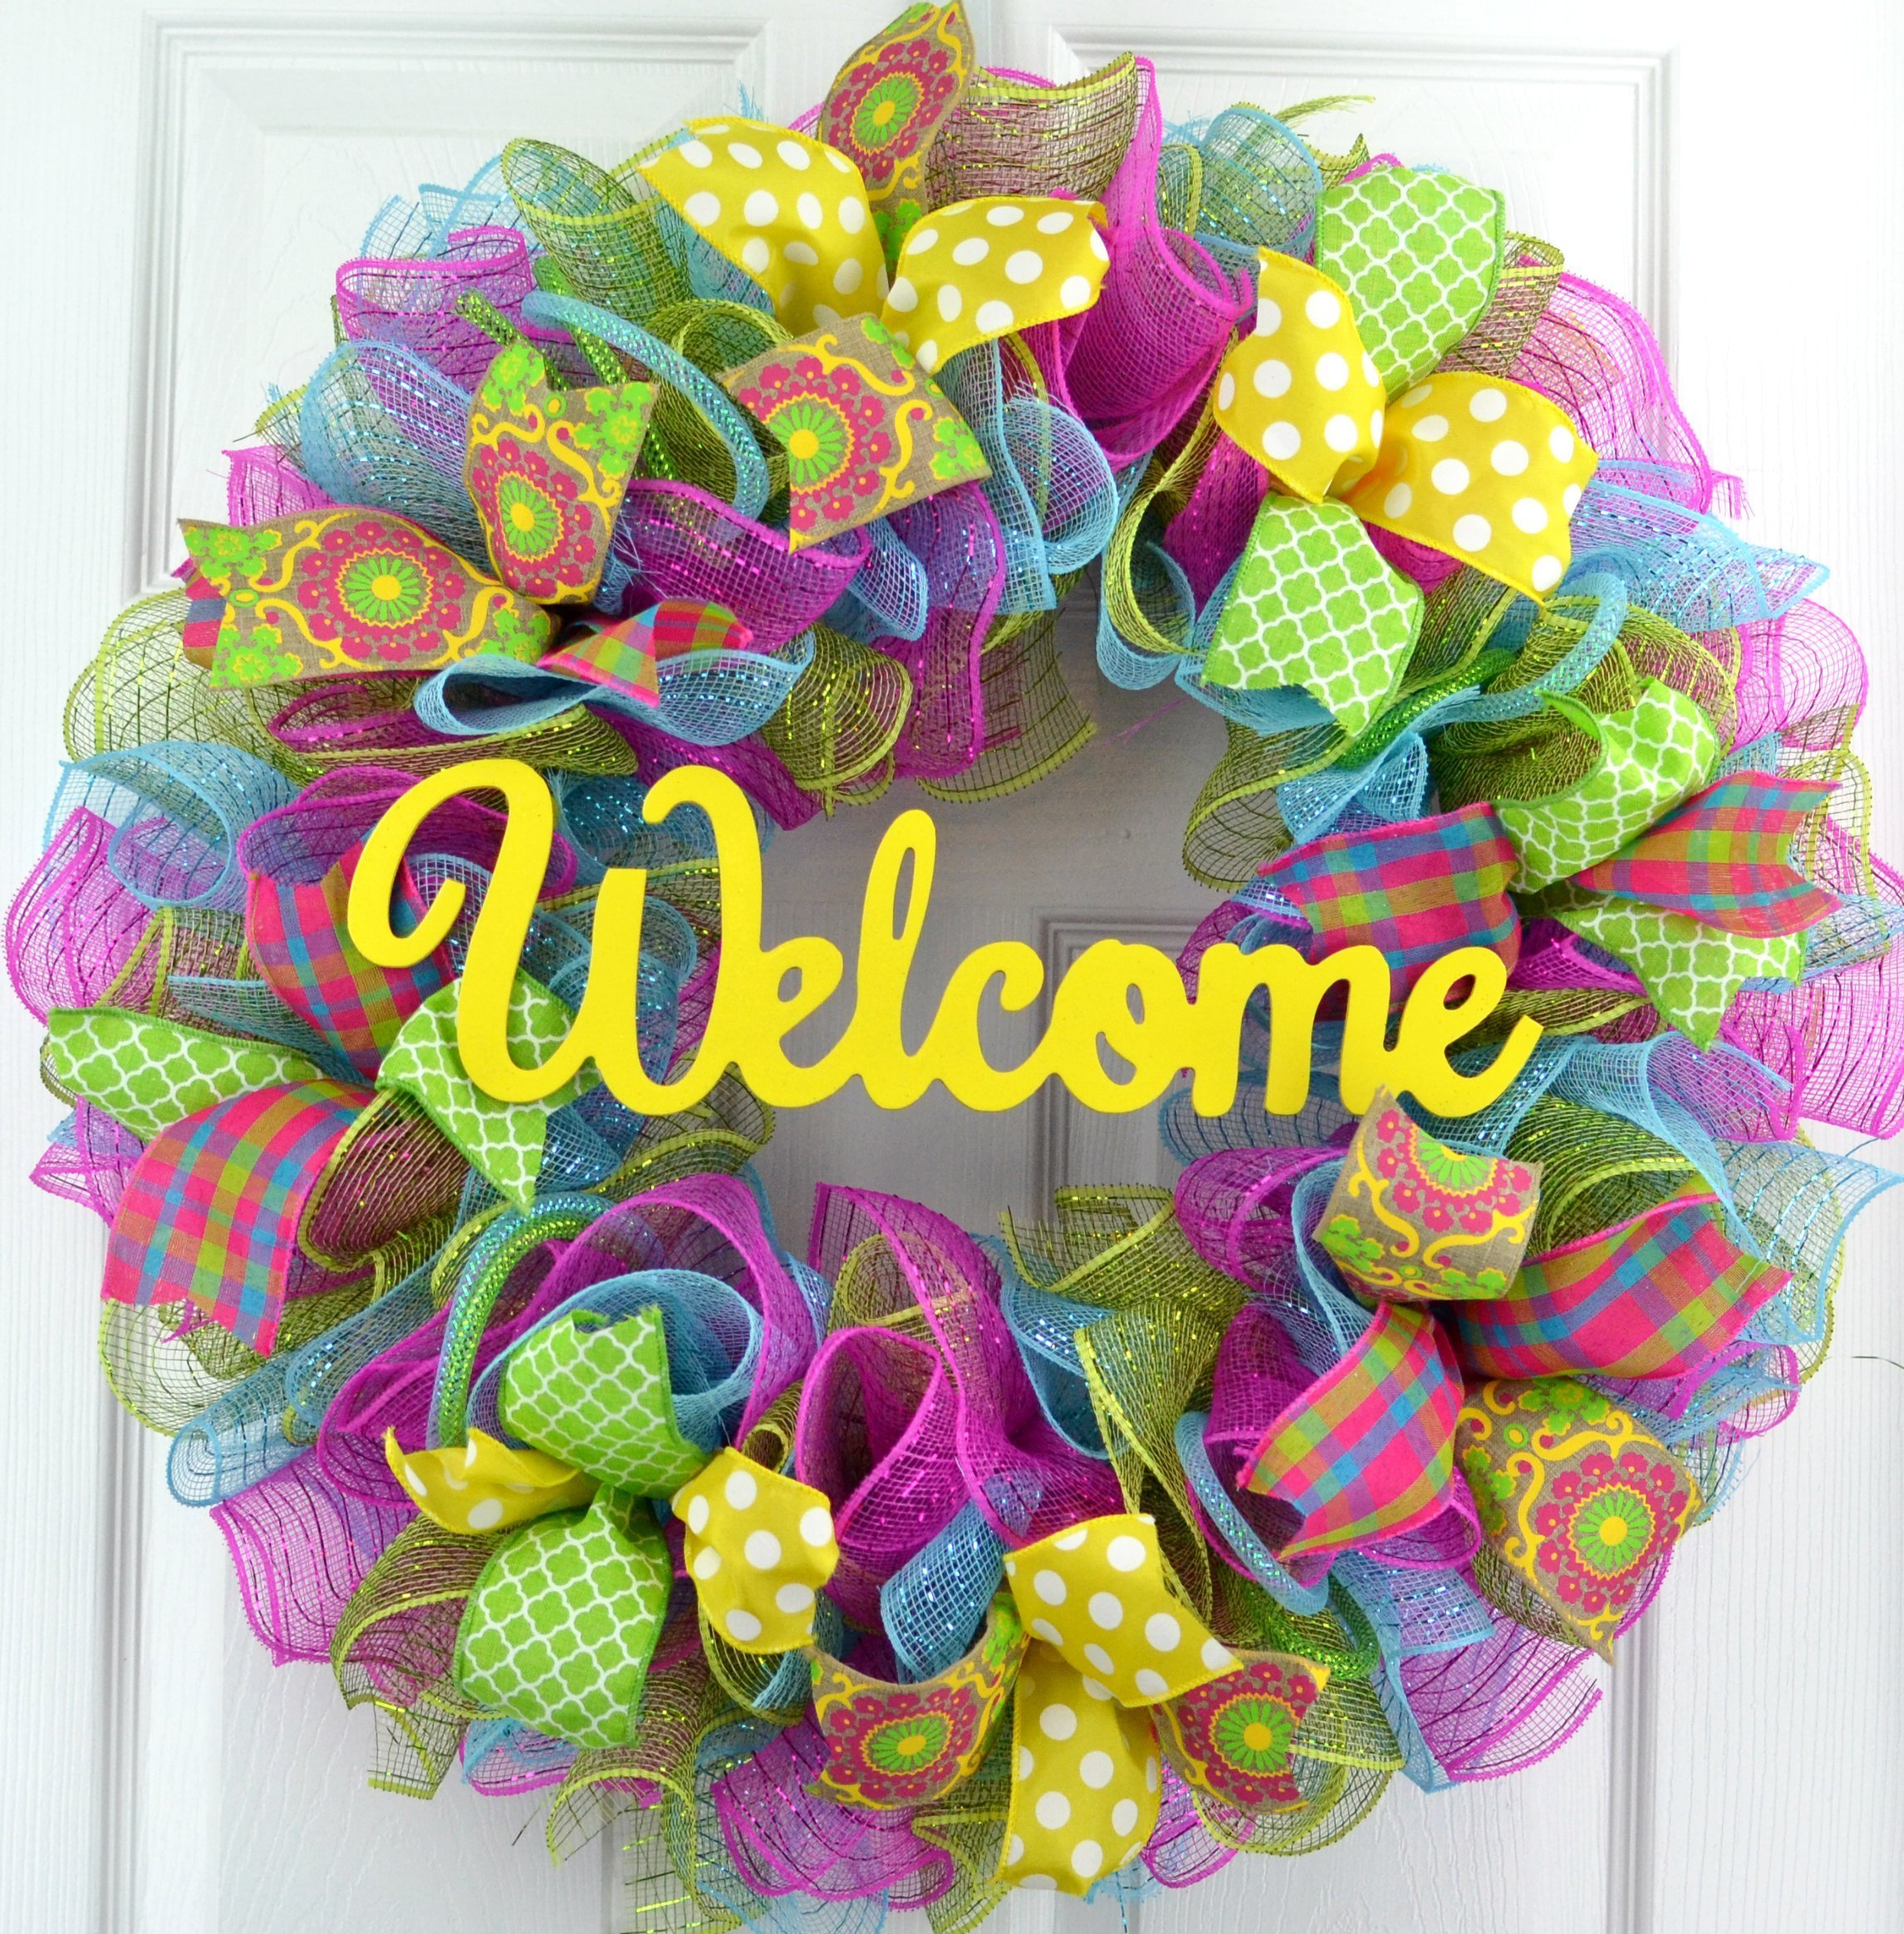 Summer-Spring-Welcome-Door-Wreath-Pink-Turquoise-Yellow-Green-P1